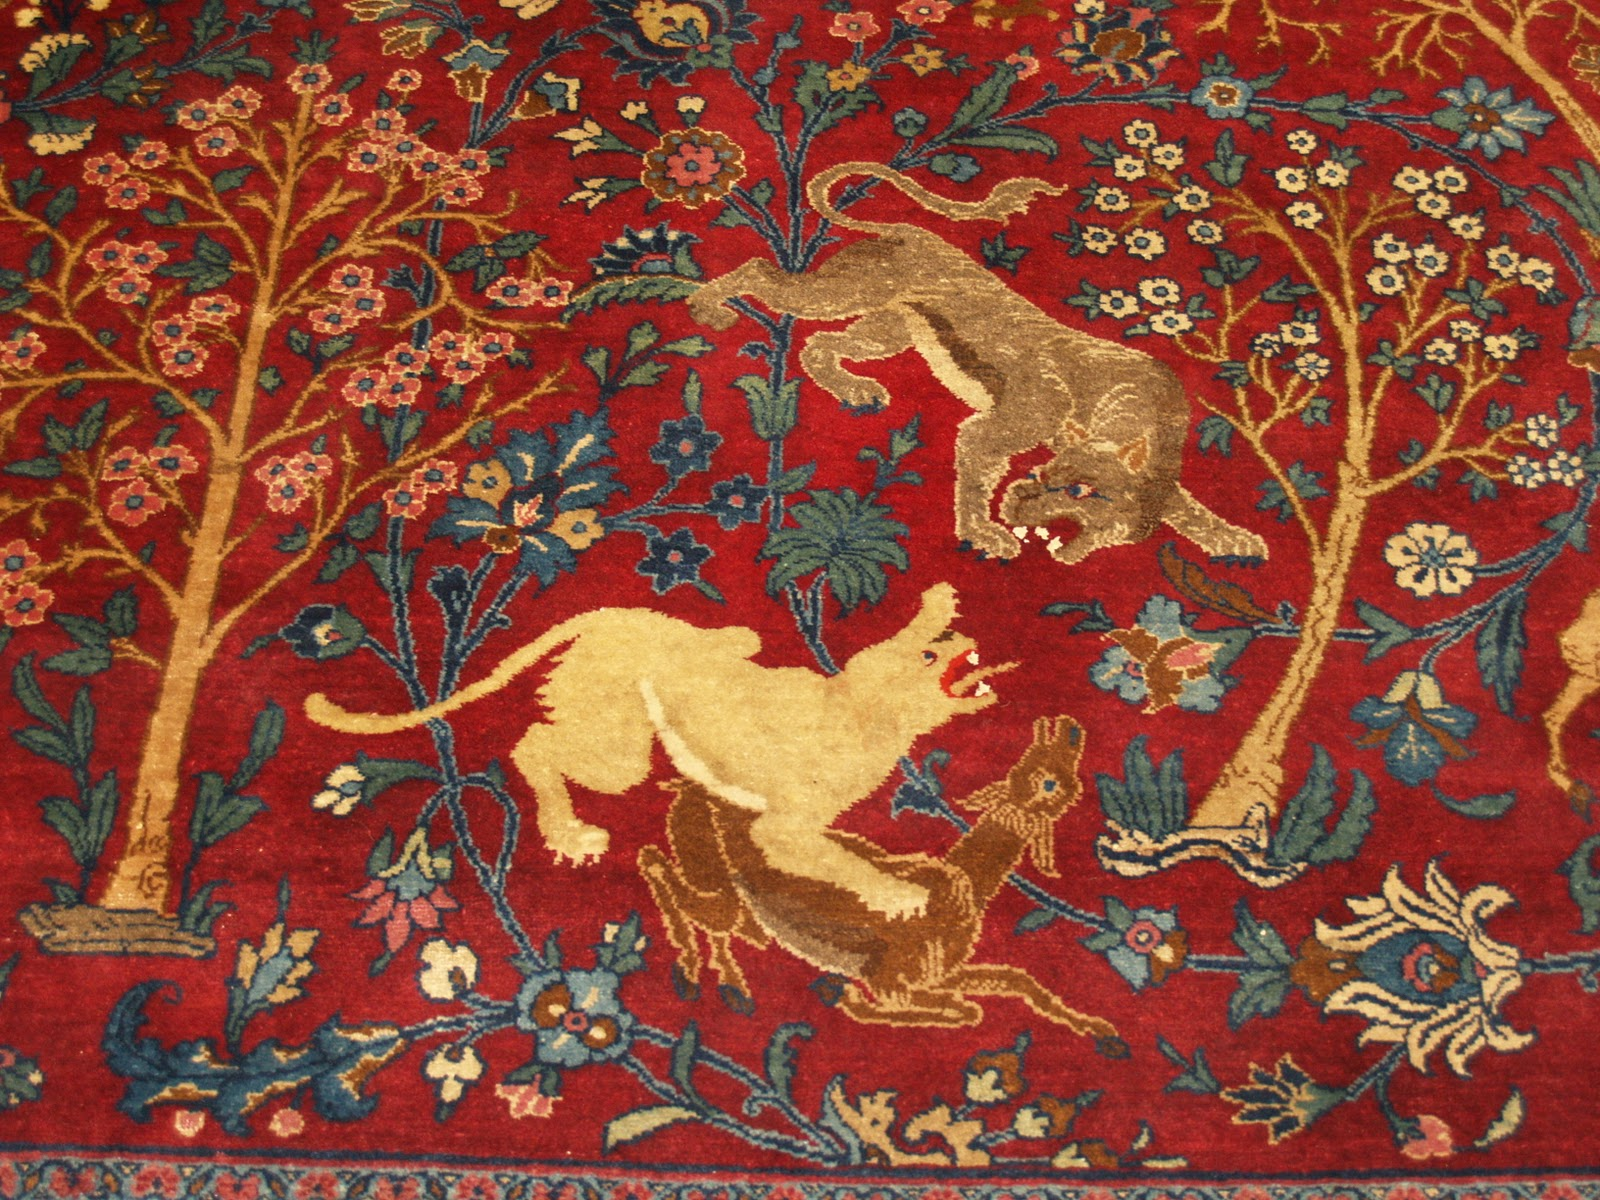 Animal Carpets: Animal Carpets and Their Beauty